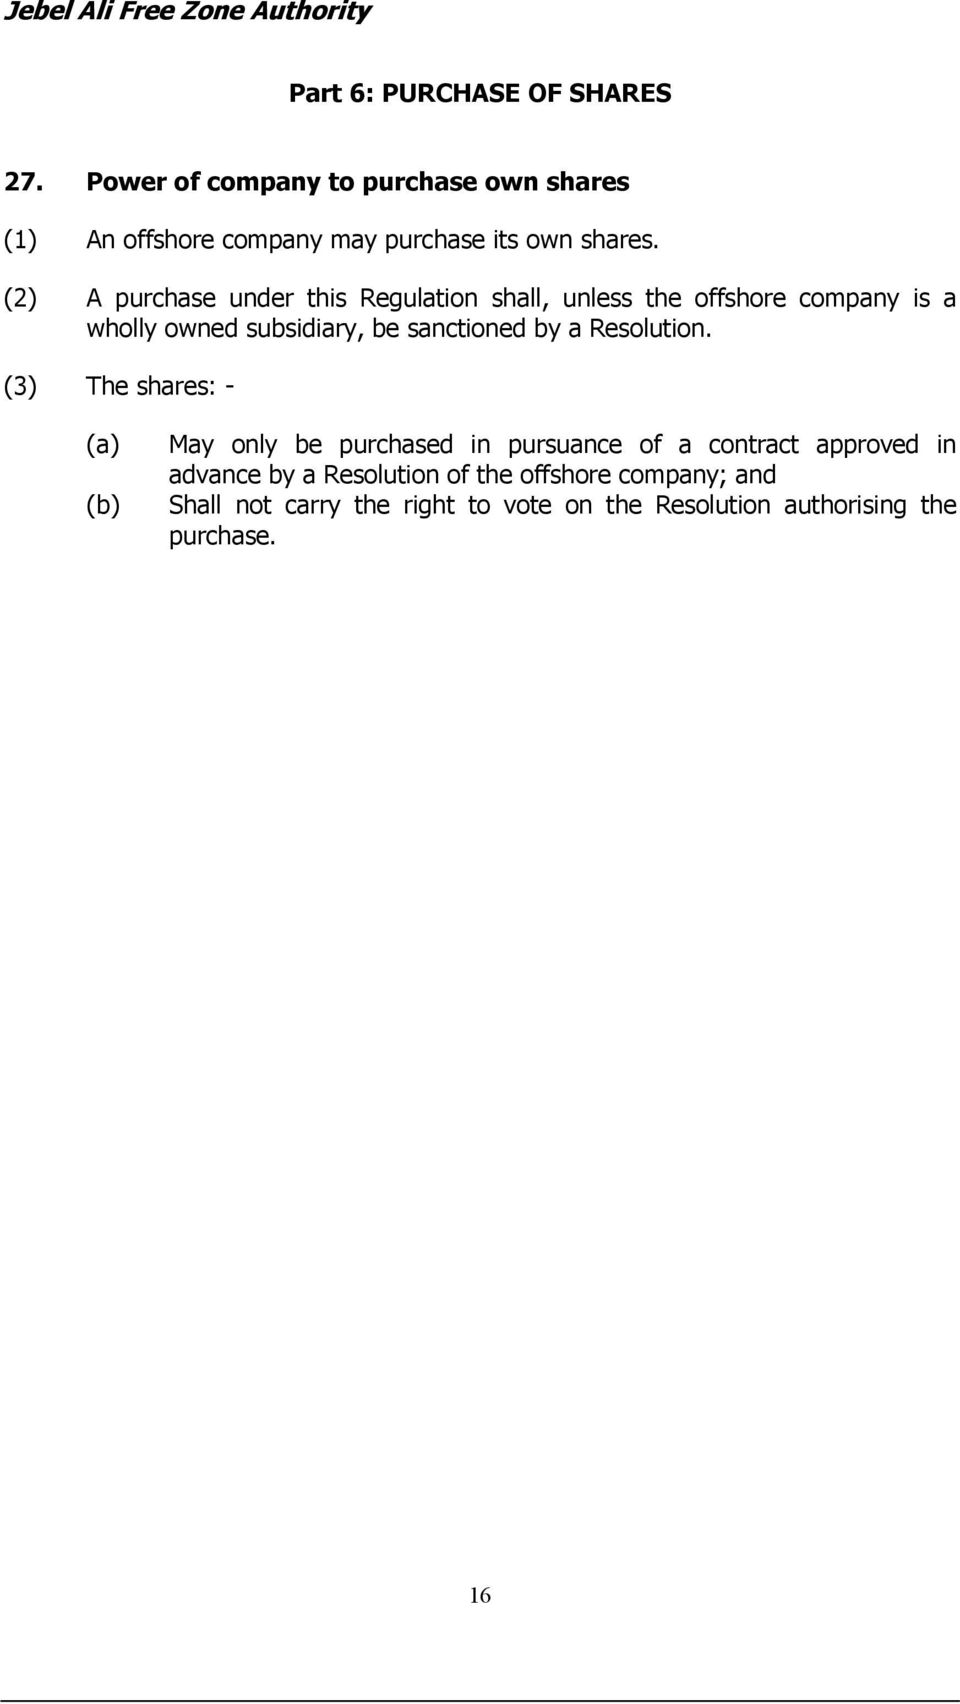 (2) A purchase under this Regulation shall, unless the offshore company is a wholly owned subsidiary, be sanctioned by